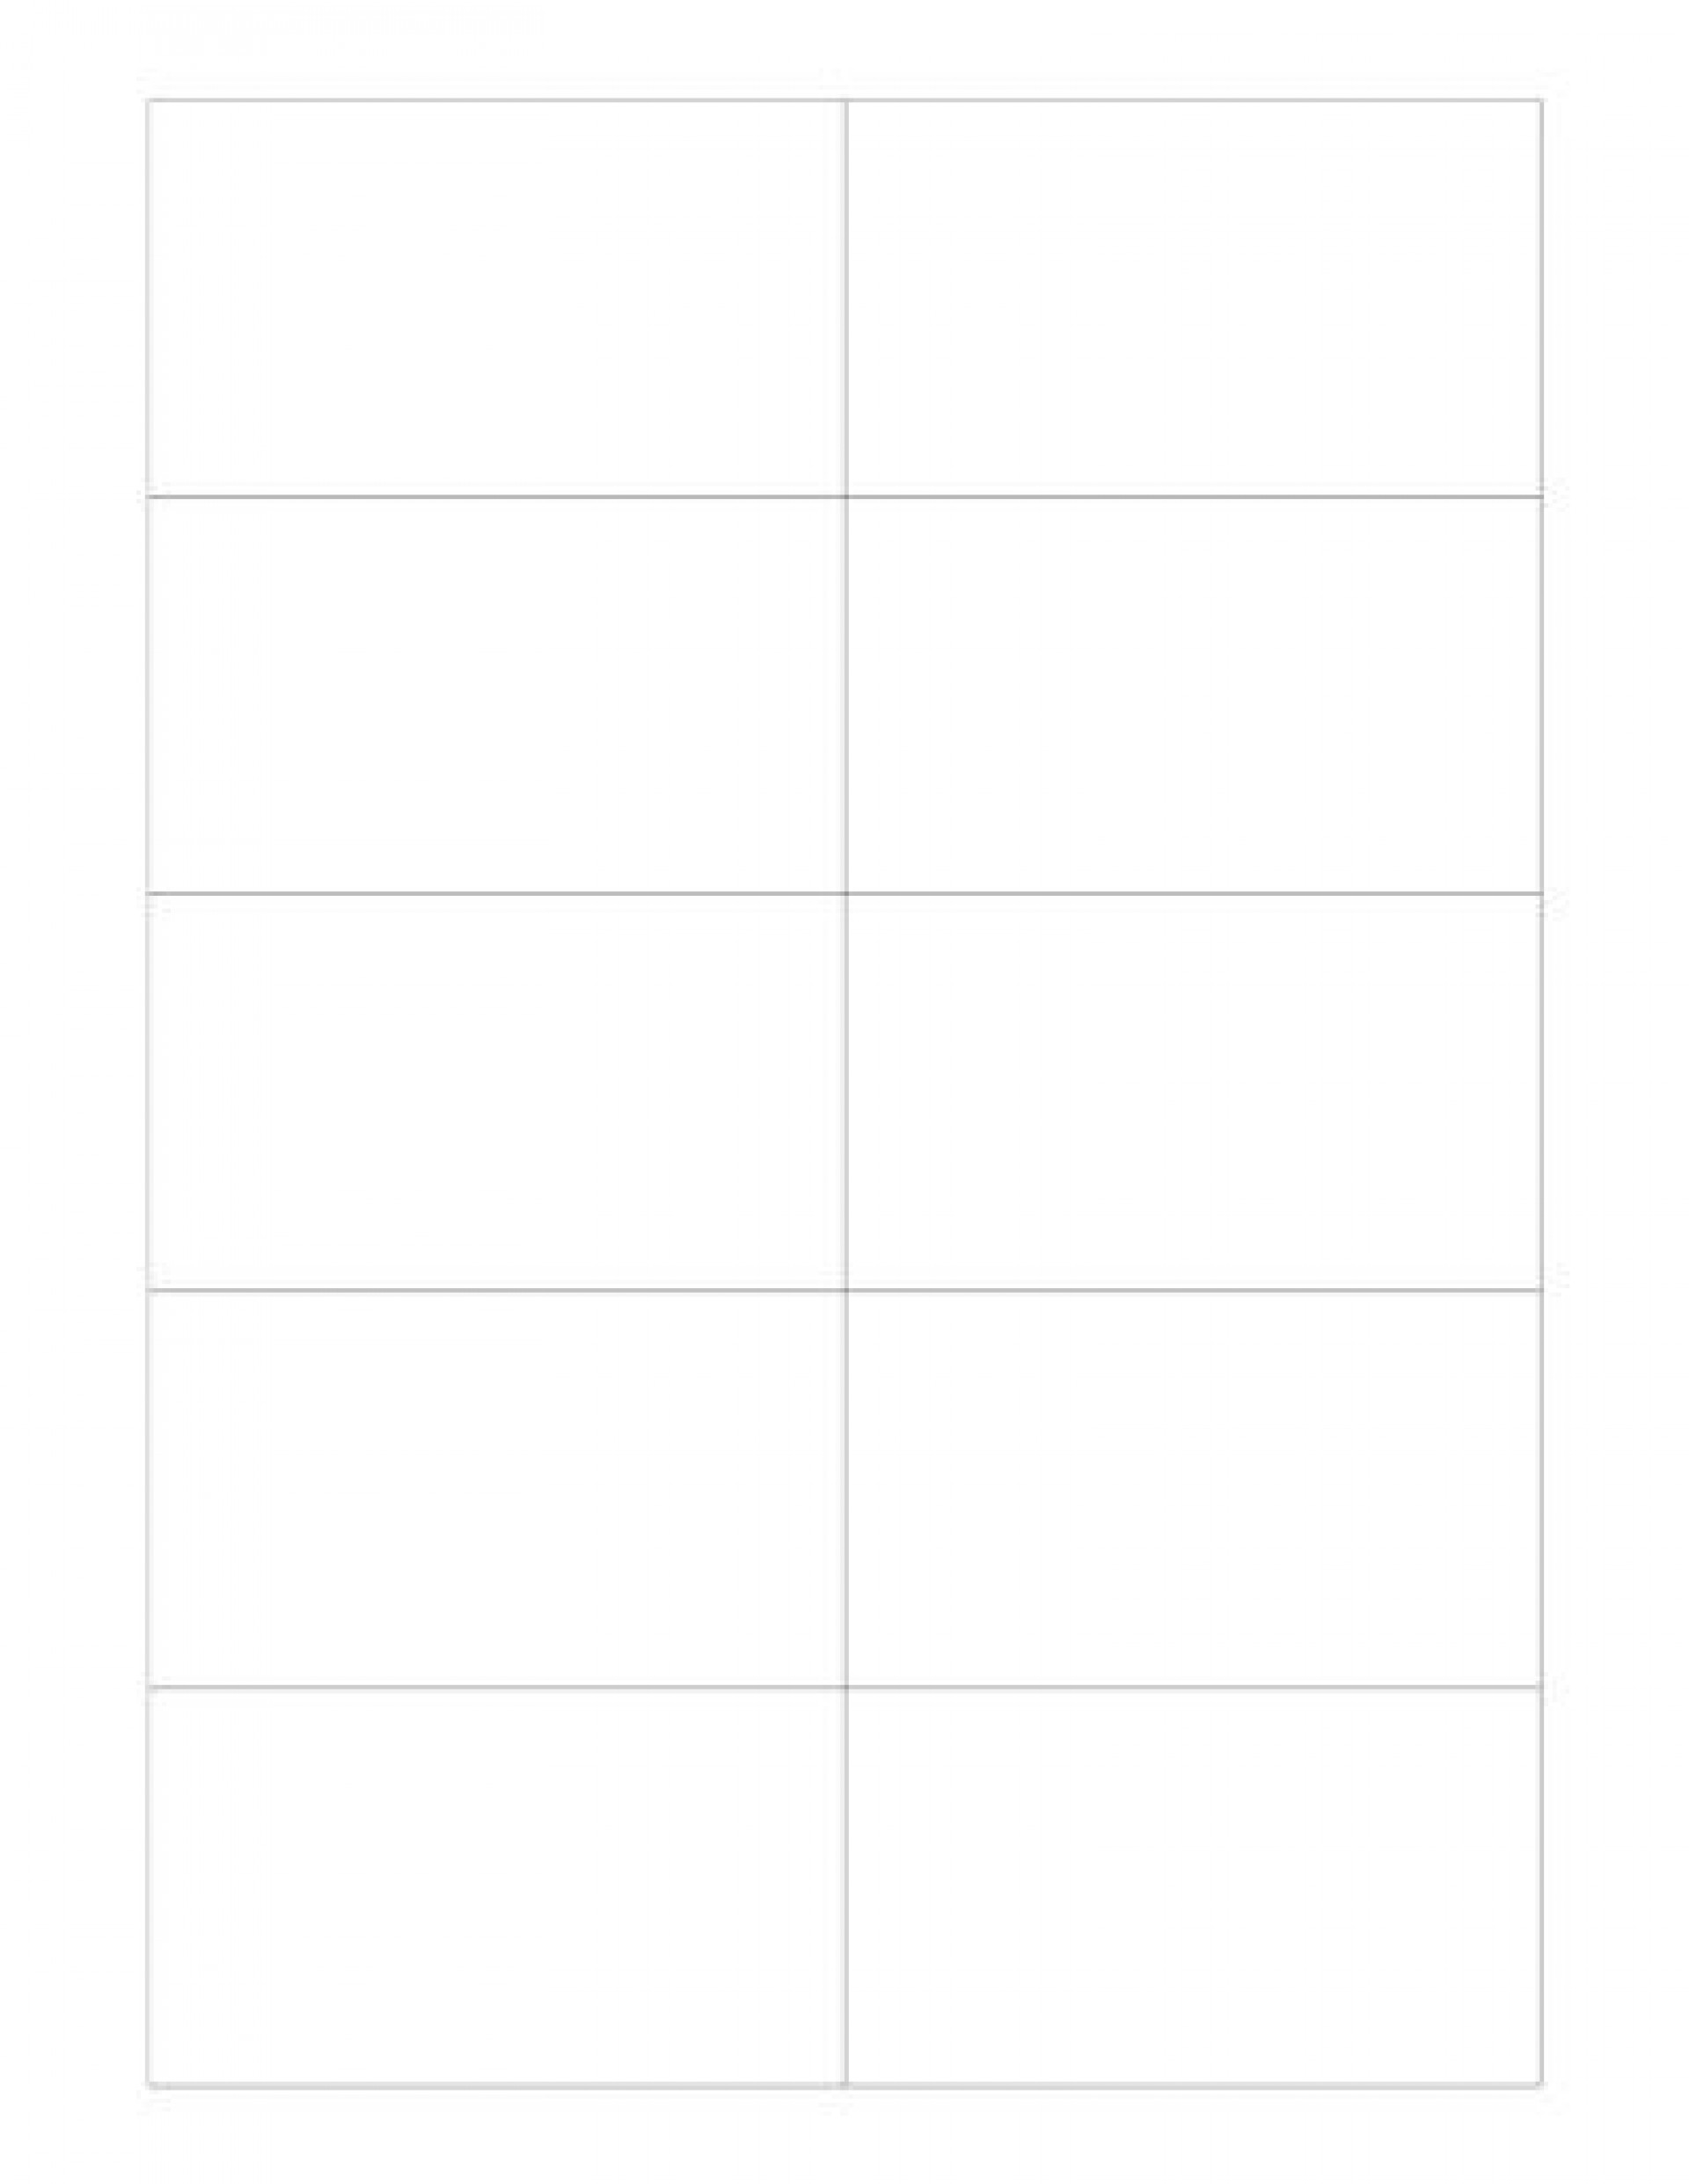 008 Awful Blank Busines Card Template Word Image  Vertical Microsoft 2013 Avery1920